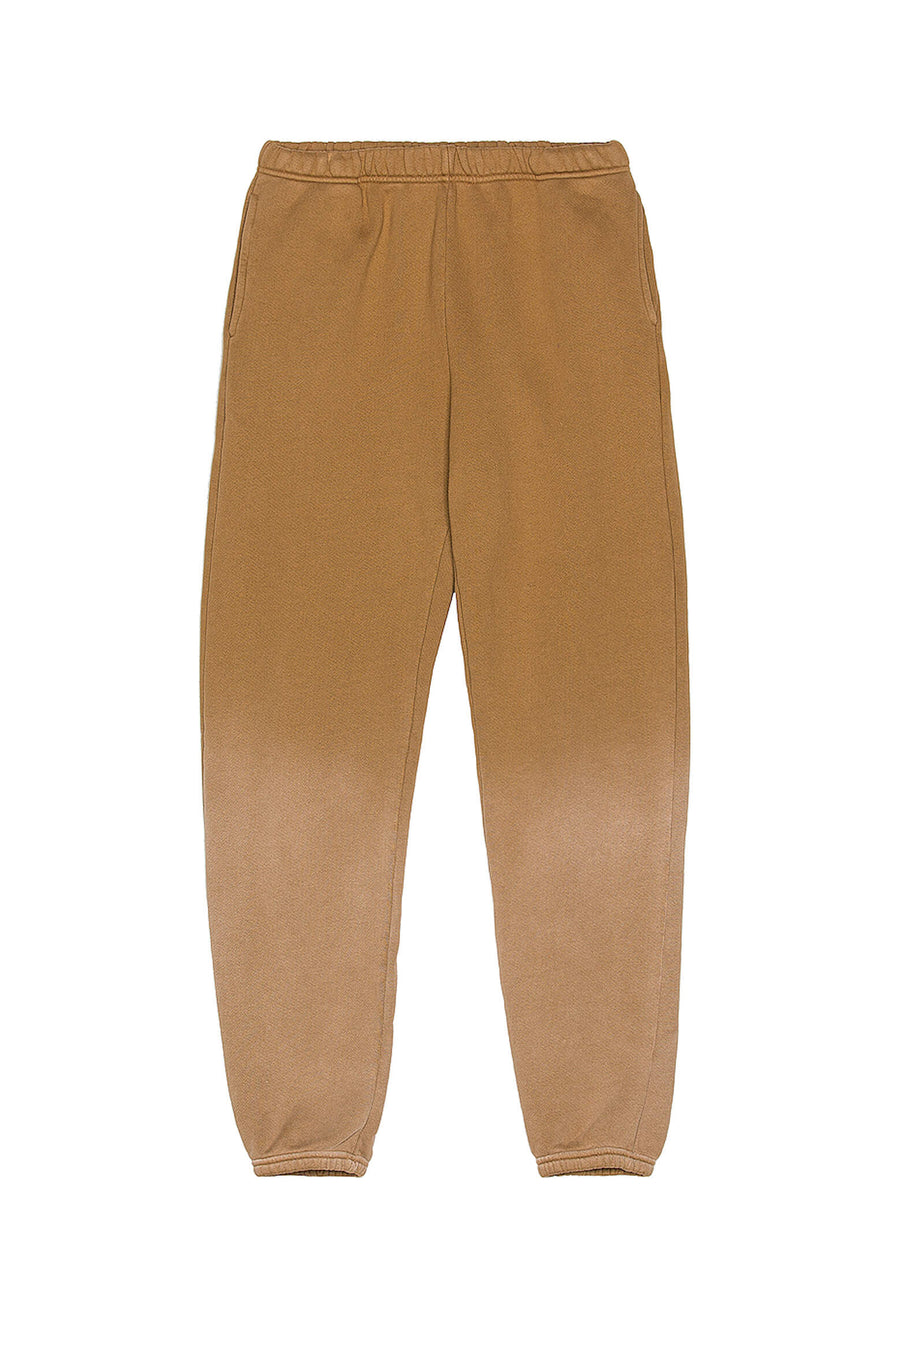 Les Tien Classic Sweatpants in Sand Ombre from The New Trend